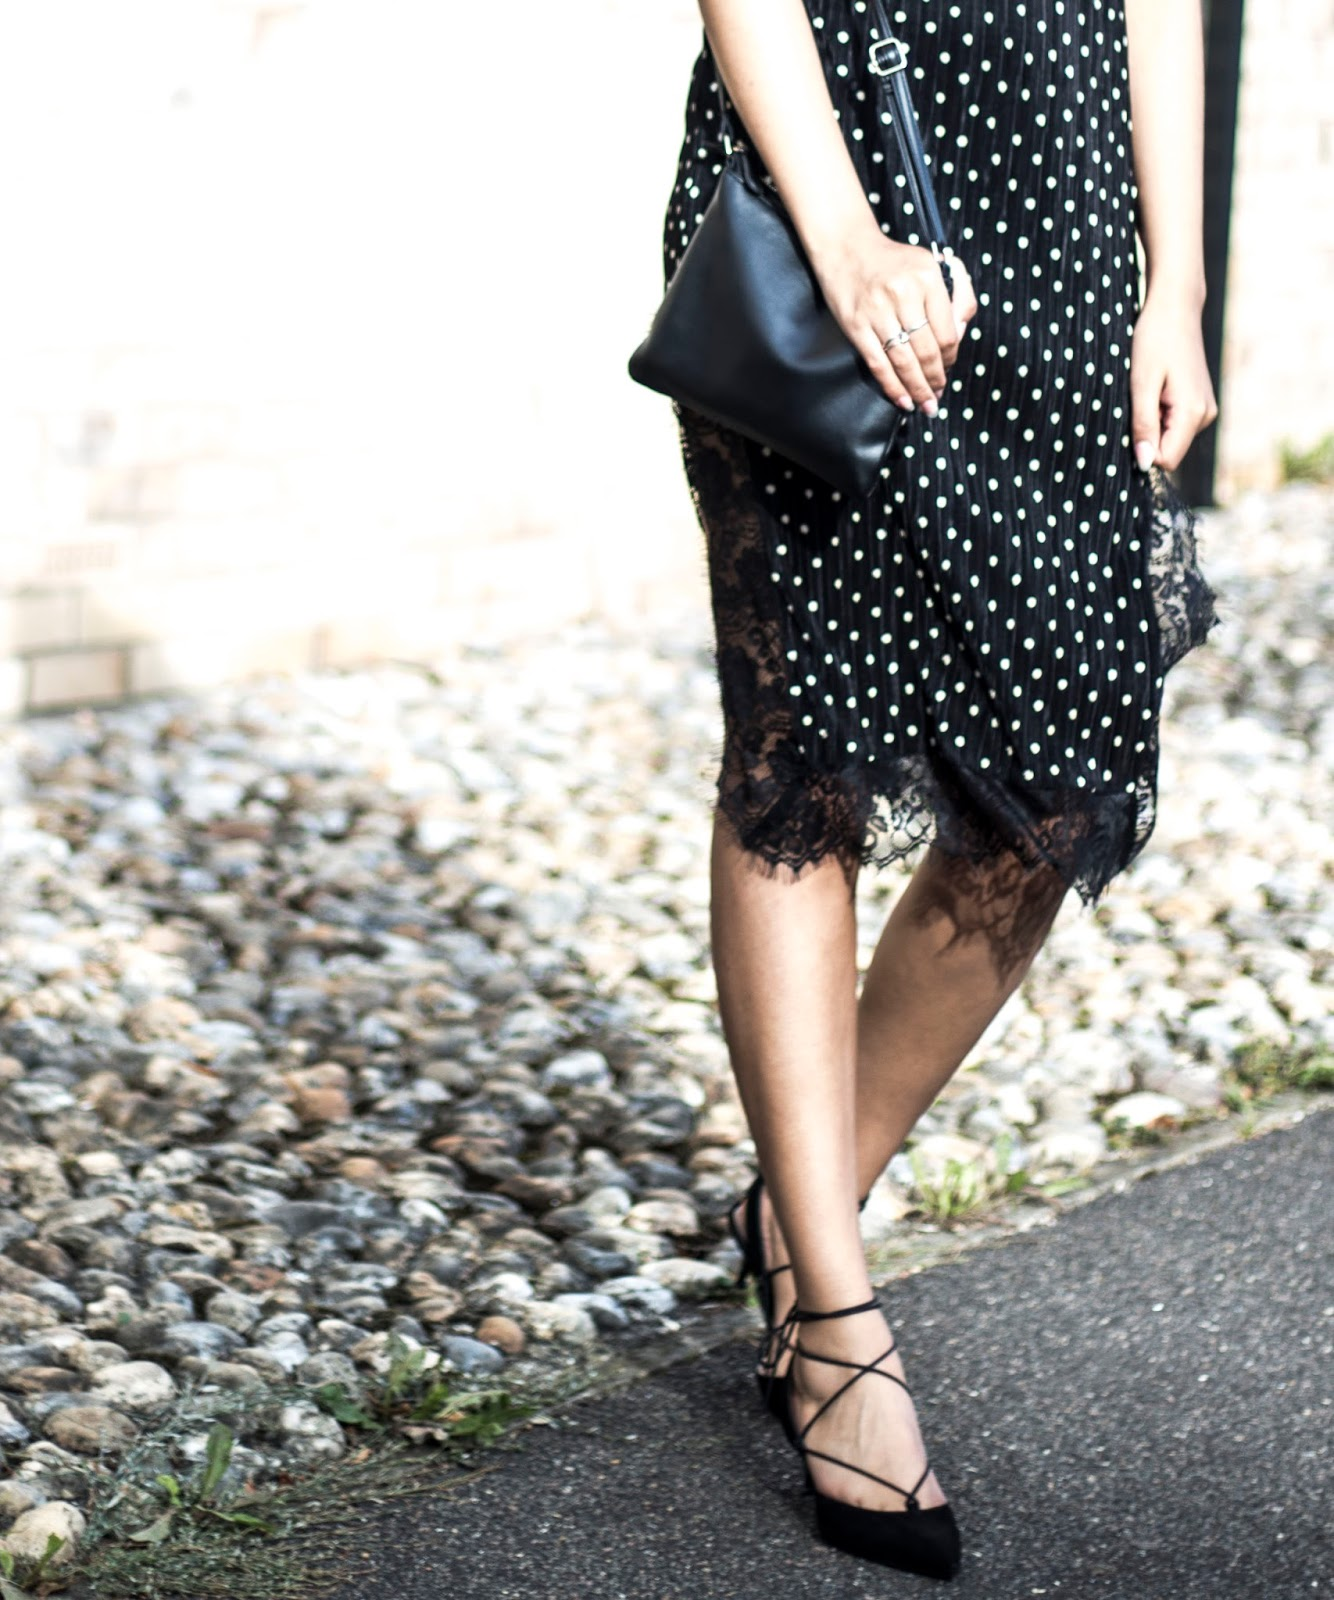 styling the slip dress topshop